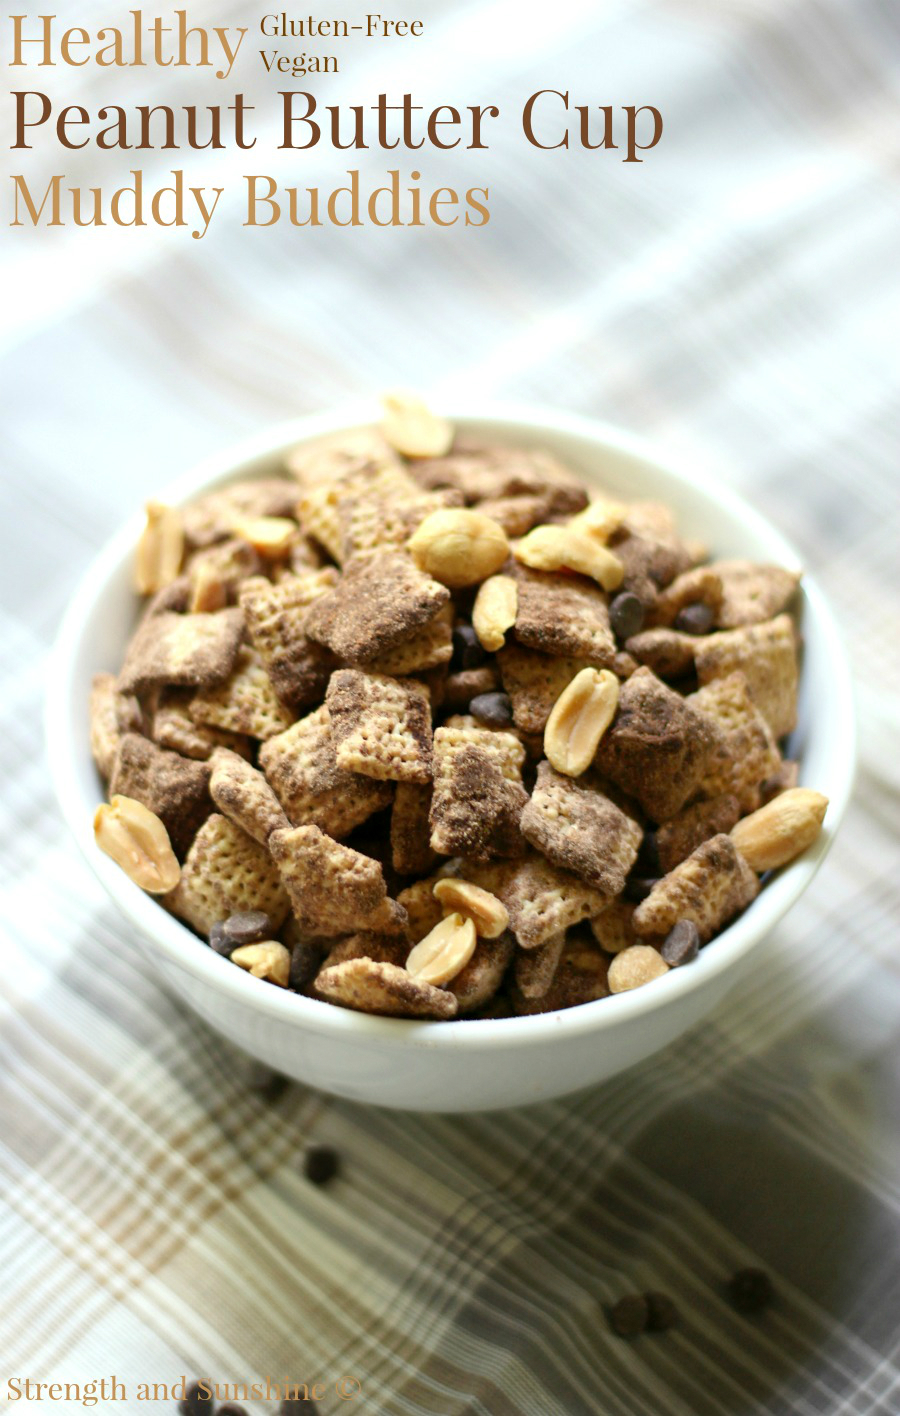 Healthy Peanut Butter Cup Muddy Buddies (Gluten-Free, Vegan) | Strength and Sunshine @RebeccaGF666 The ultimate in healthy snacking! Healthy Peanut Butter Cup Muddy Buddies! This is not your typical puppy chow; it's gluten-free, vegan, and sugar-free! The kids will come running for this fun and easy snack and will always have fun helping out making the recipe!